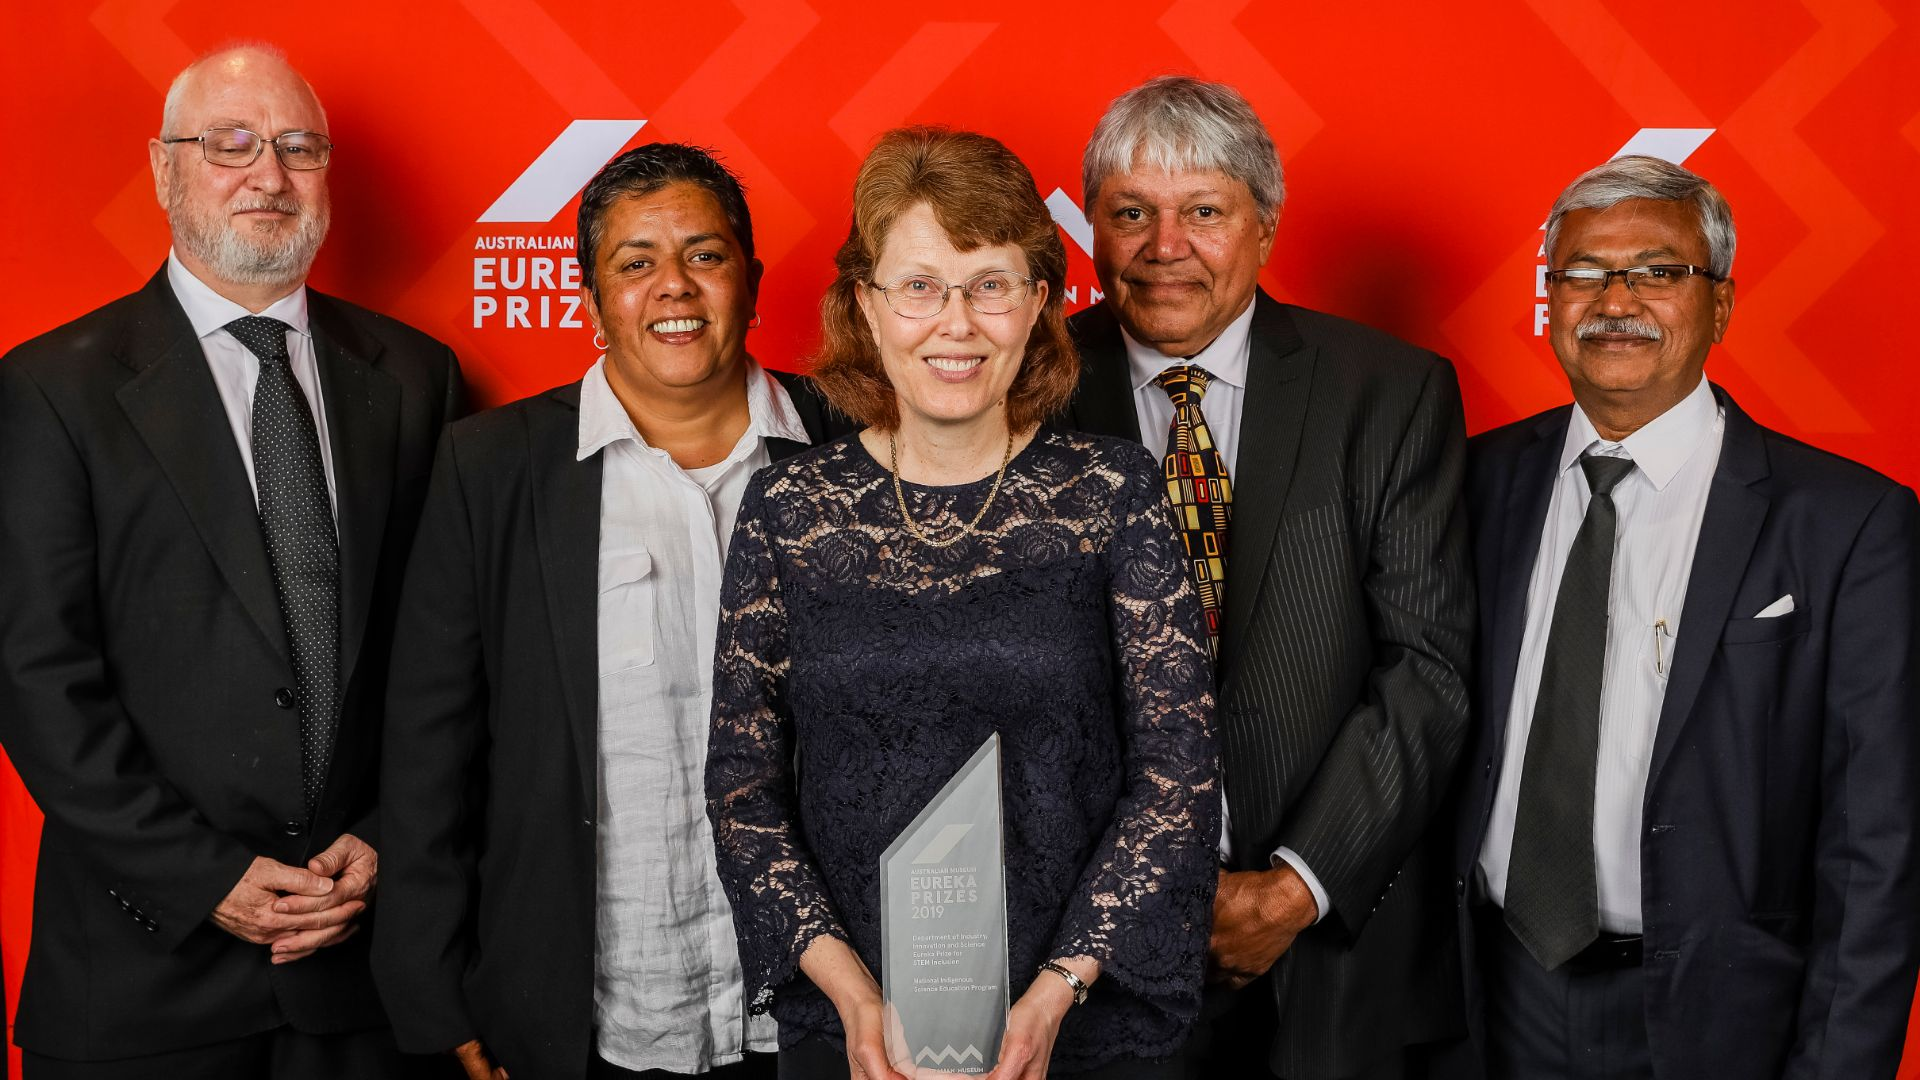 Charles Sturt partnership program wins national award for STEM Inclusion